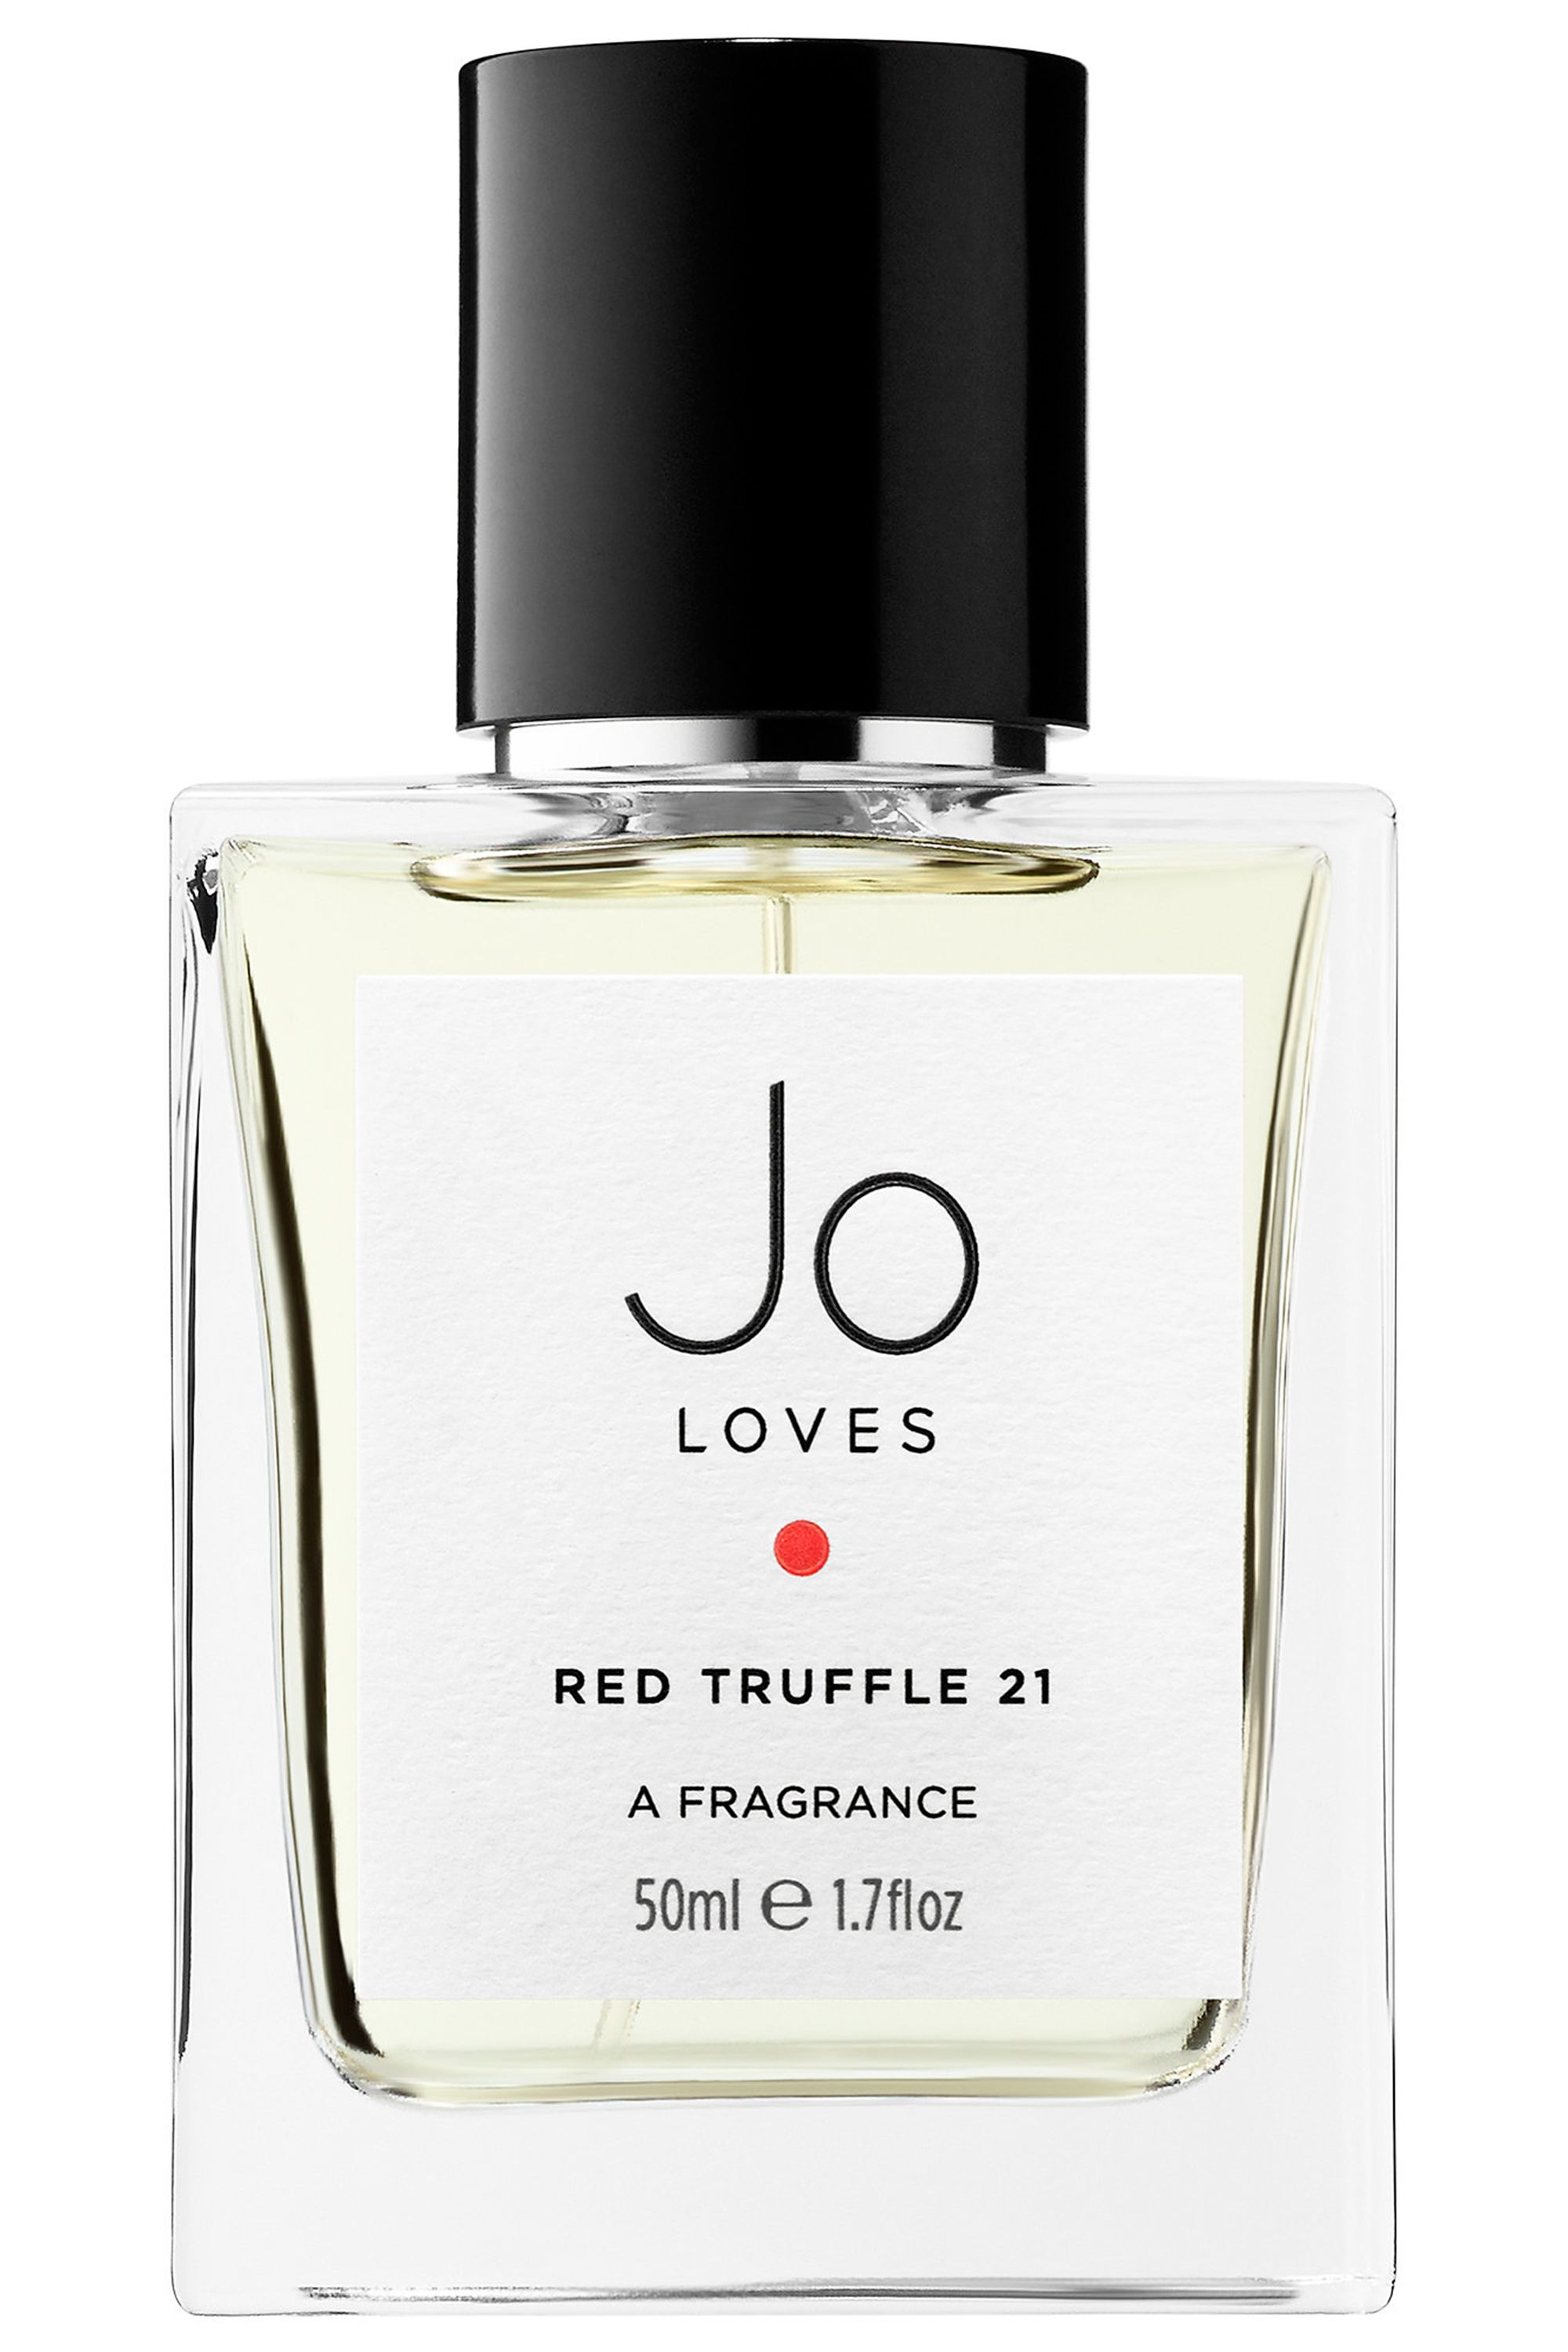 e4e2ef3b0 Best Women's Perfume 2019 - 27 fragrances you'll fall in love with at first  spritz